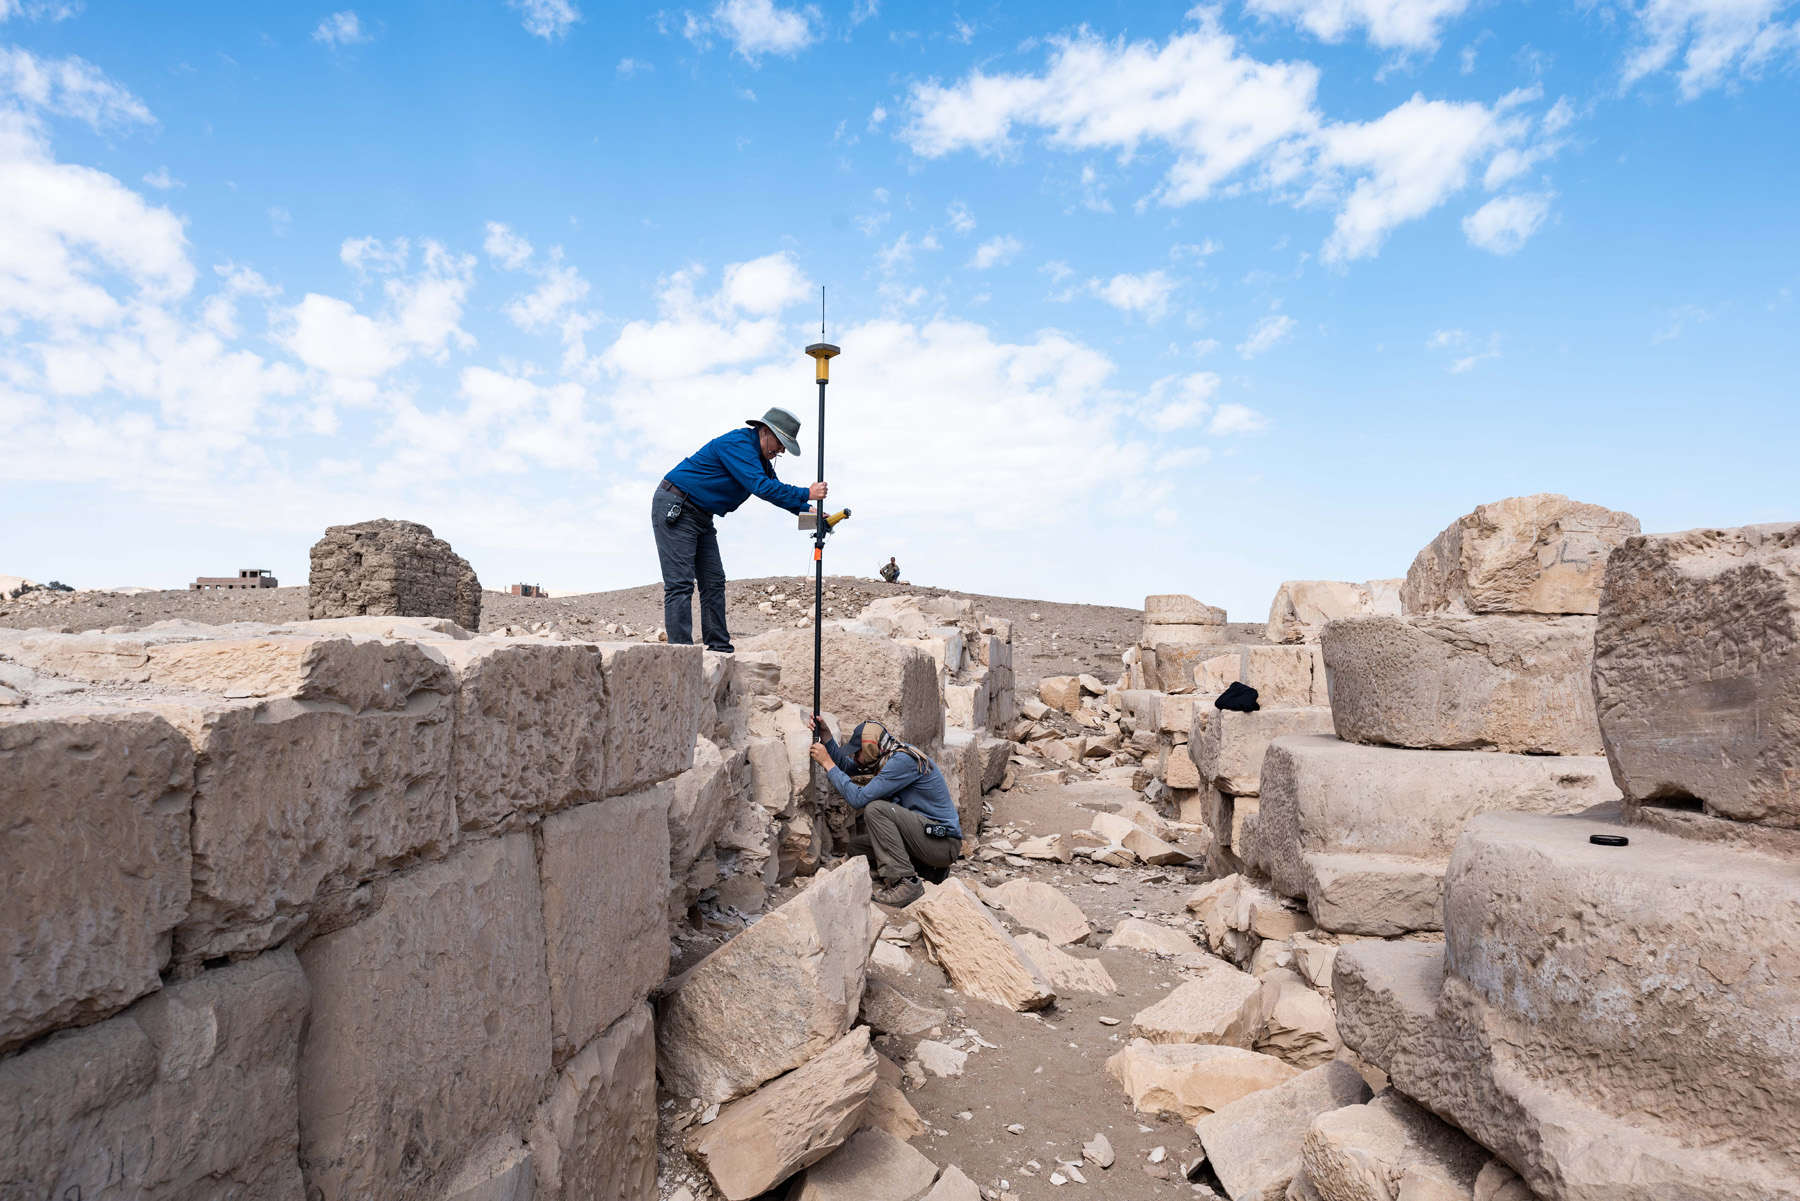 Fig. 15. Archaeologist Jo Young mapping the footprint of the temple's walls using GPS. Photo: Ayman Damarany © North Abydos Expedition 2019